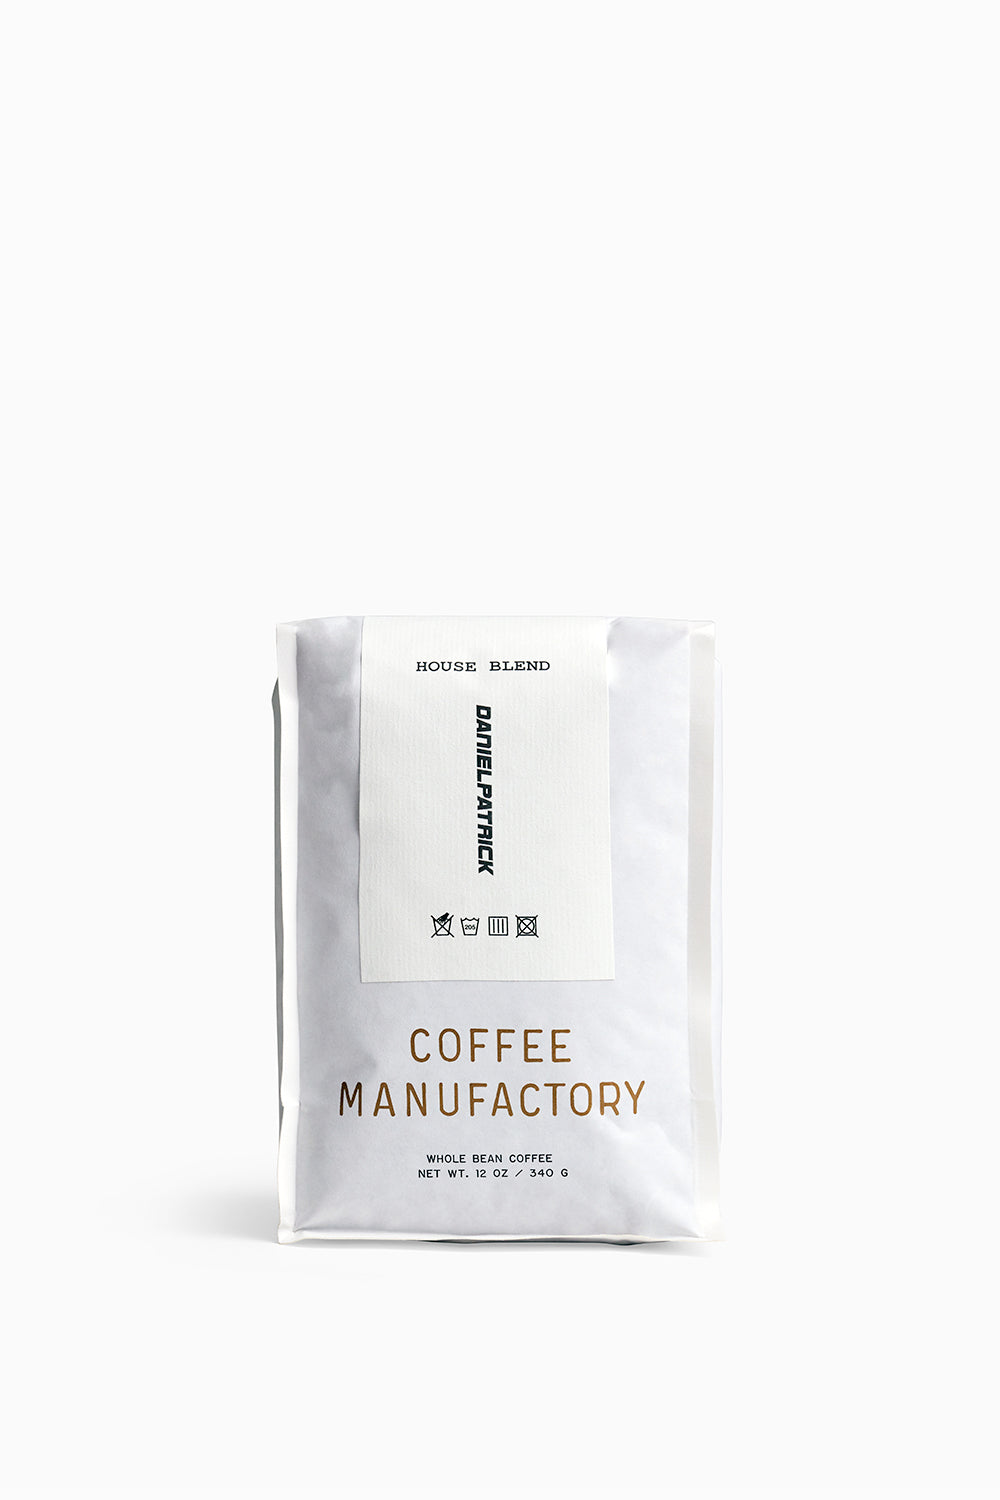 Daniel Patrick x Coffee Manufactory house blend whole bean coffee